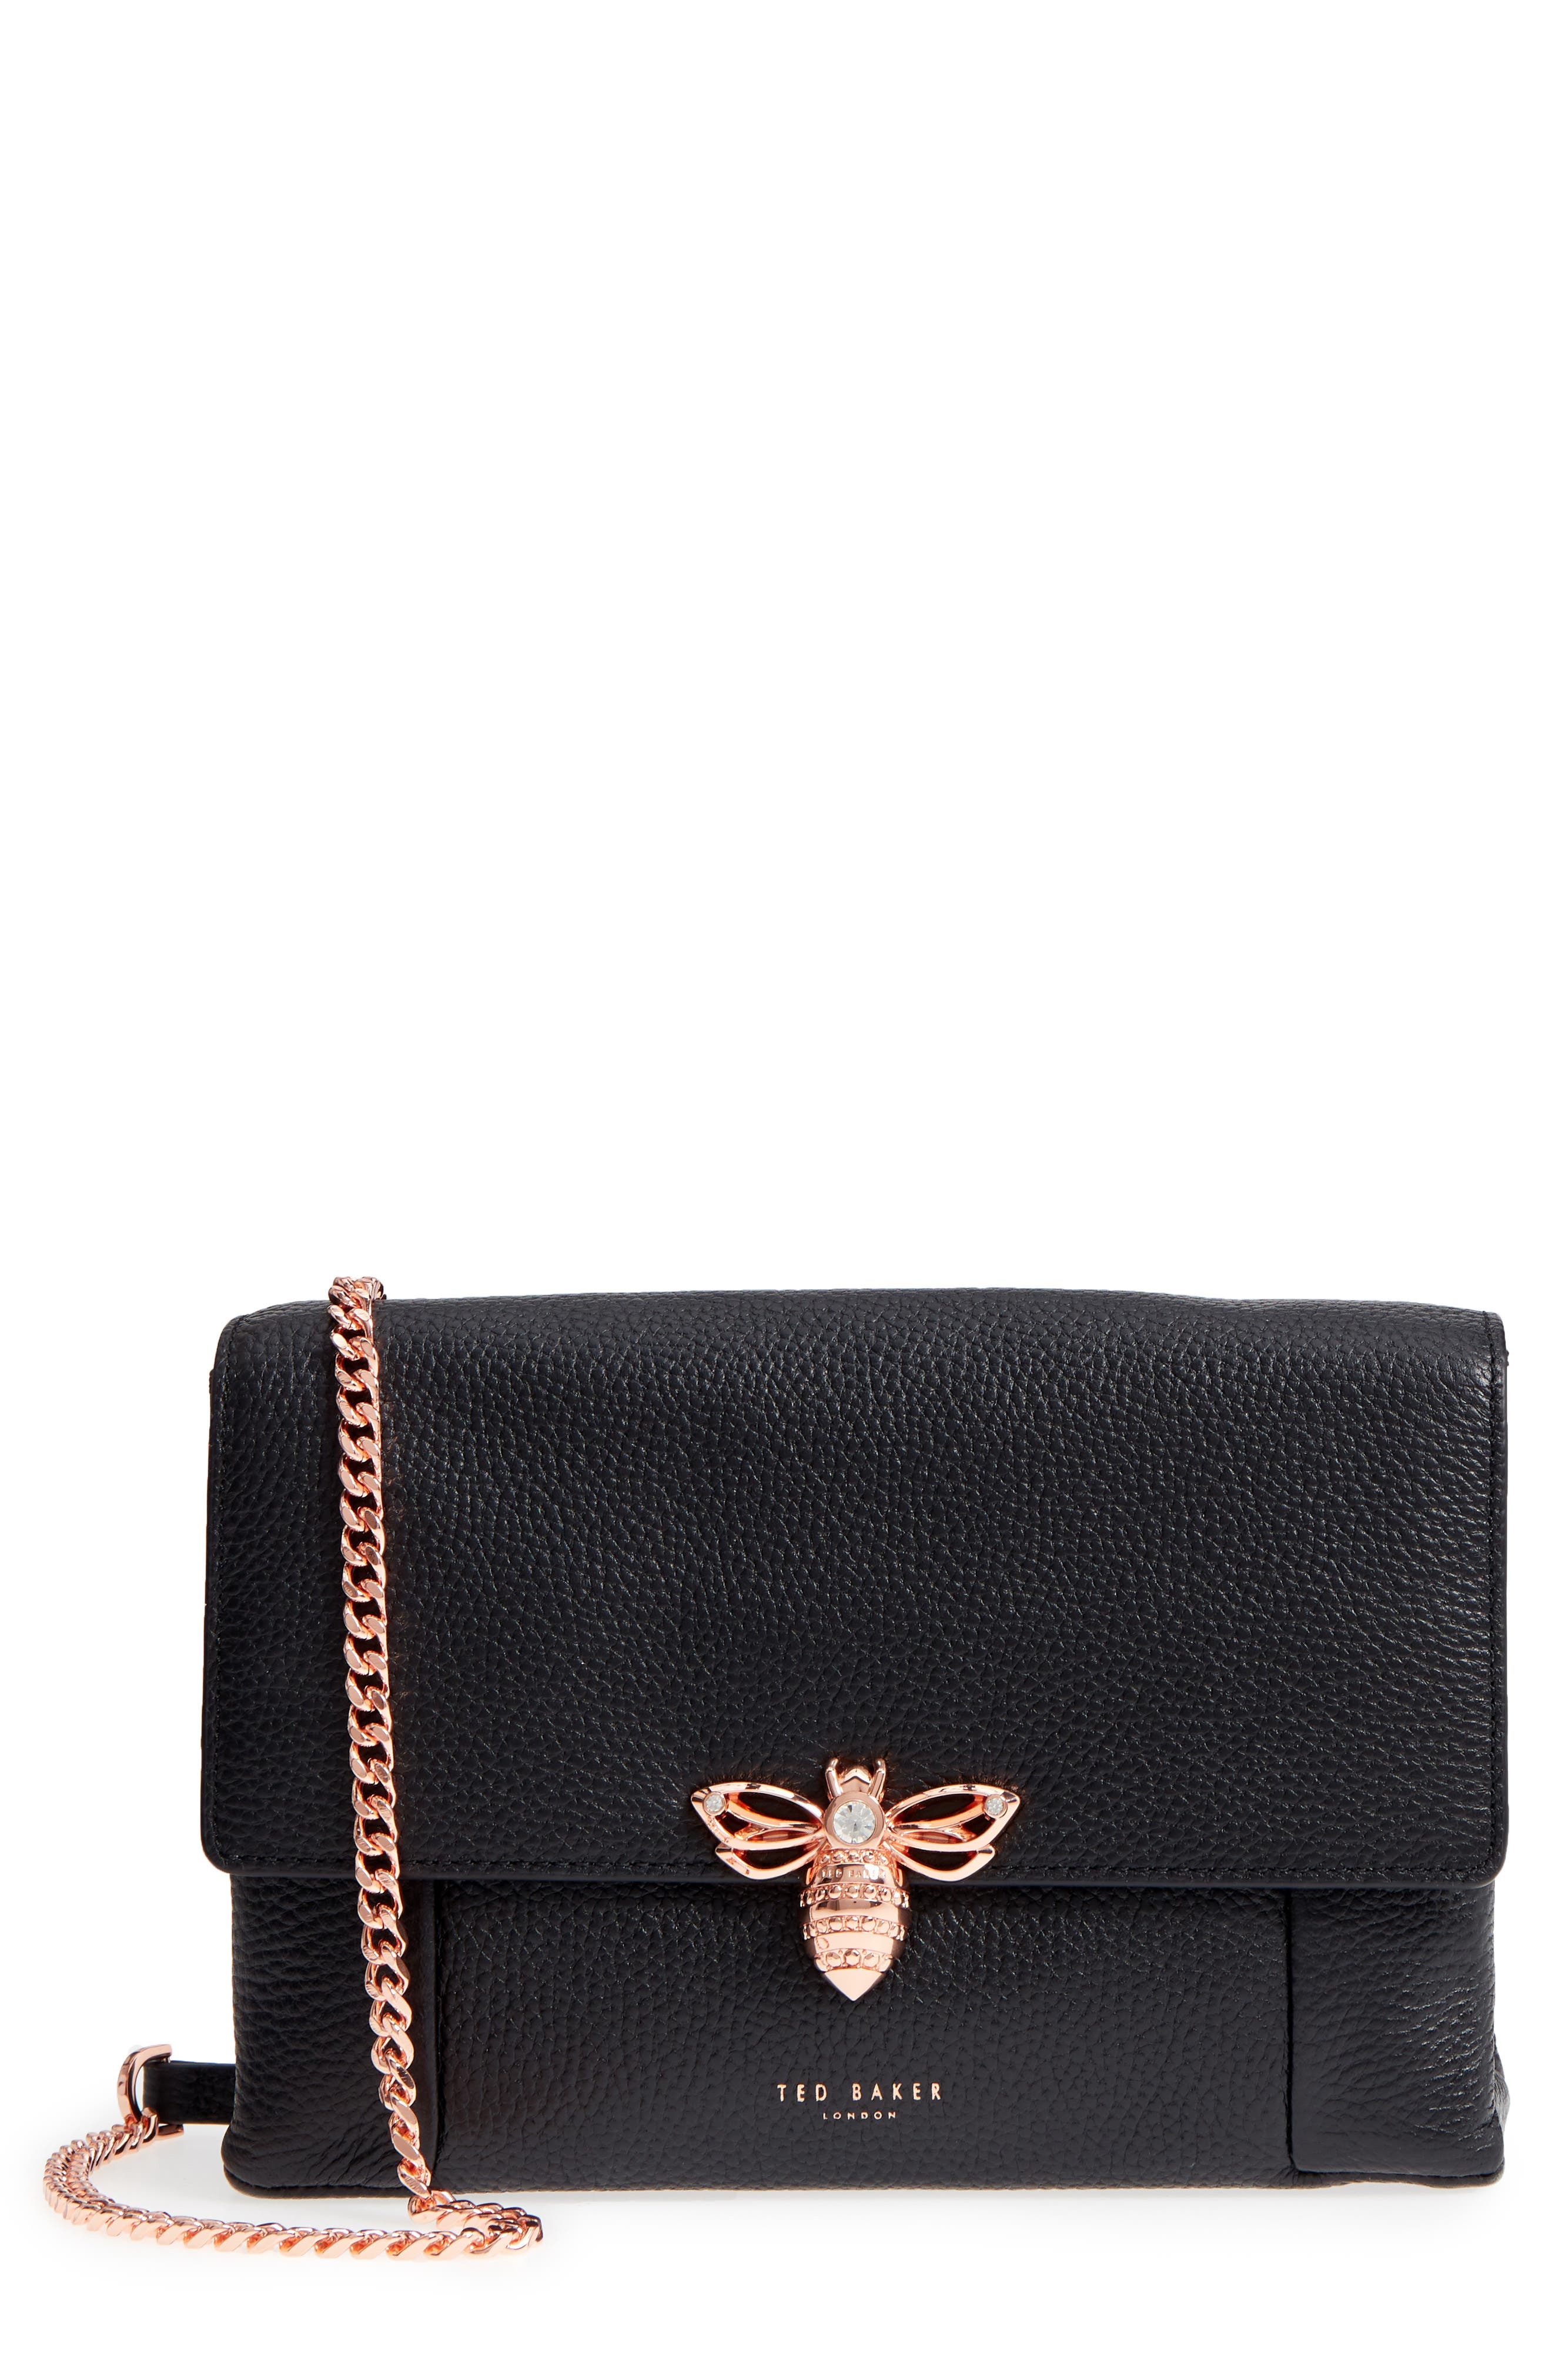 Zzlee Bee Embellished Crossbody Bag,                         Main,                         color, Black